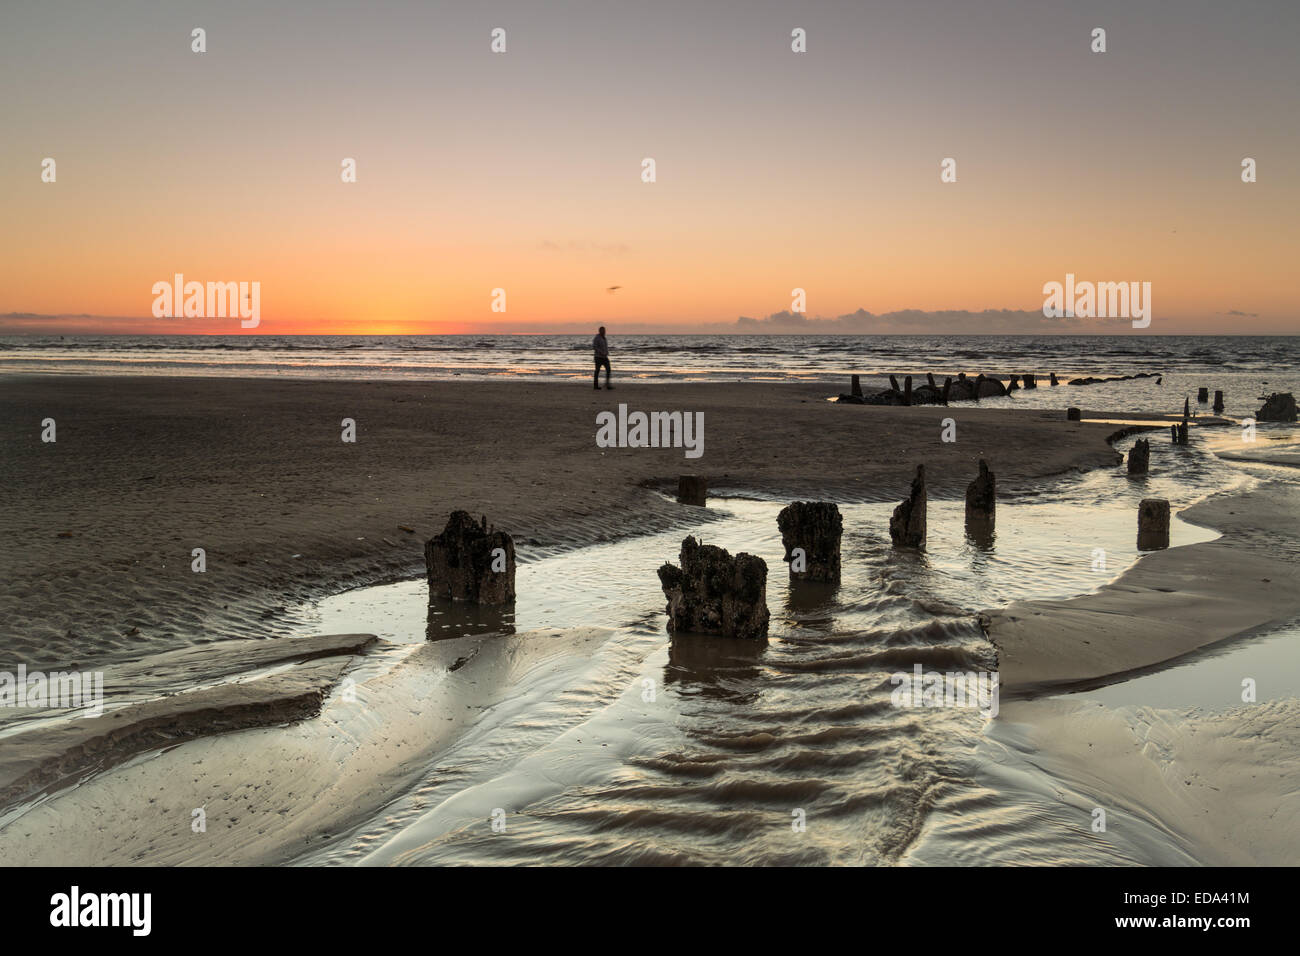 Blackpool, UK. 3rd Jan, 2014. After a wet start the weather improves and finishes for a fine evening in Blackpool. - Stock Image